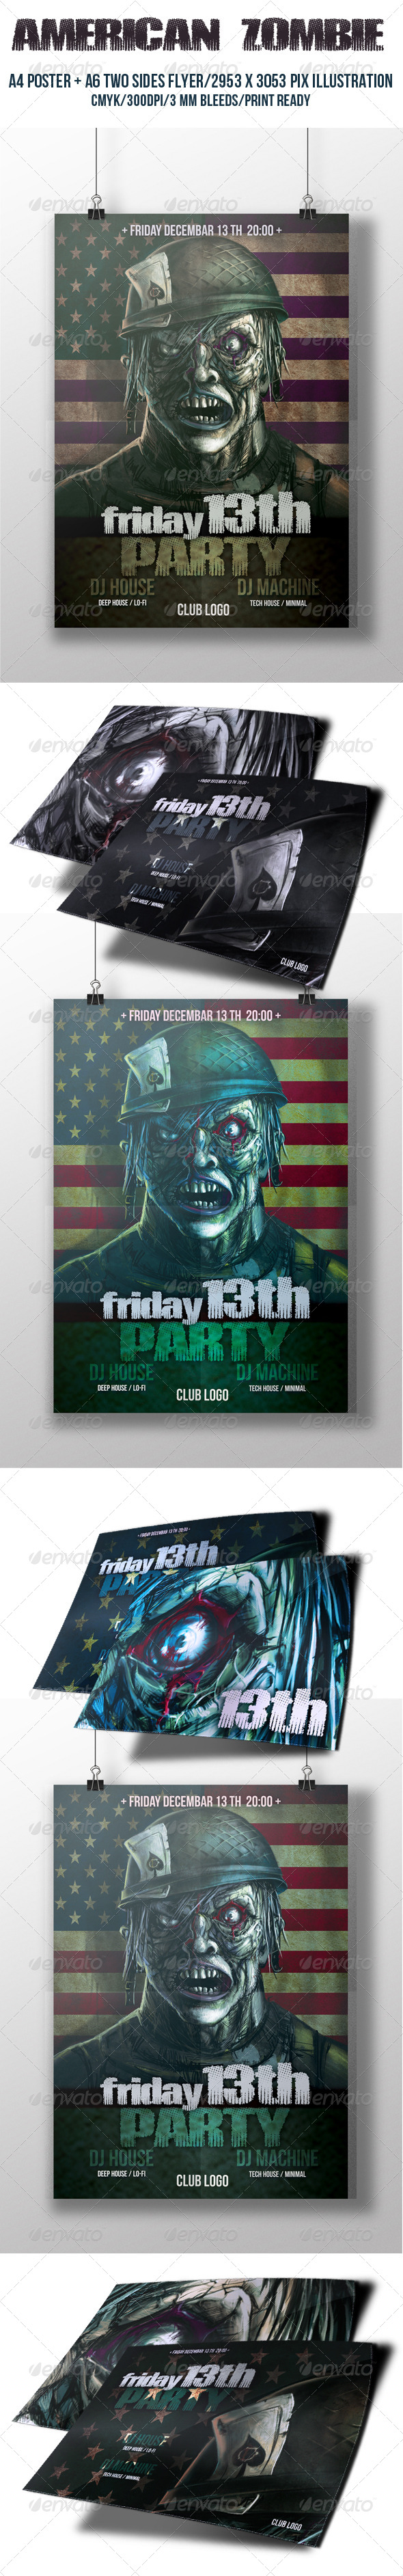 GraphicRiver American Zombie Poster 6316975